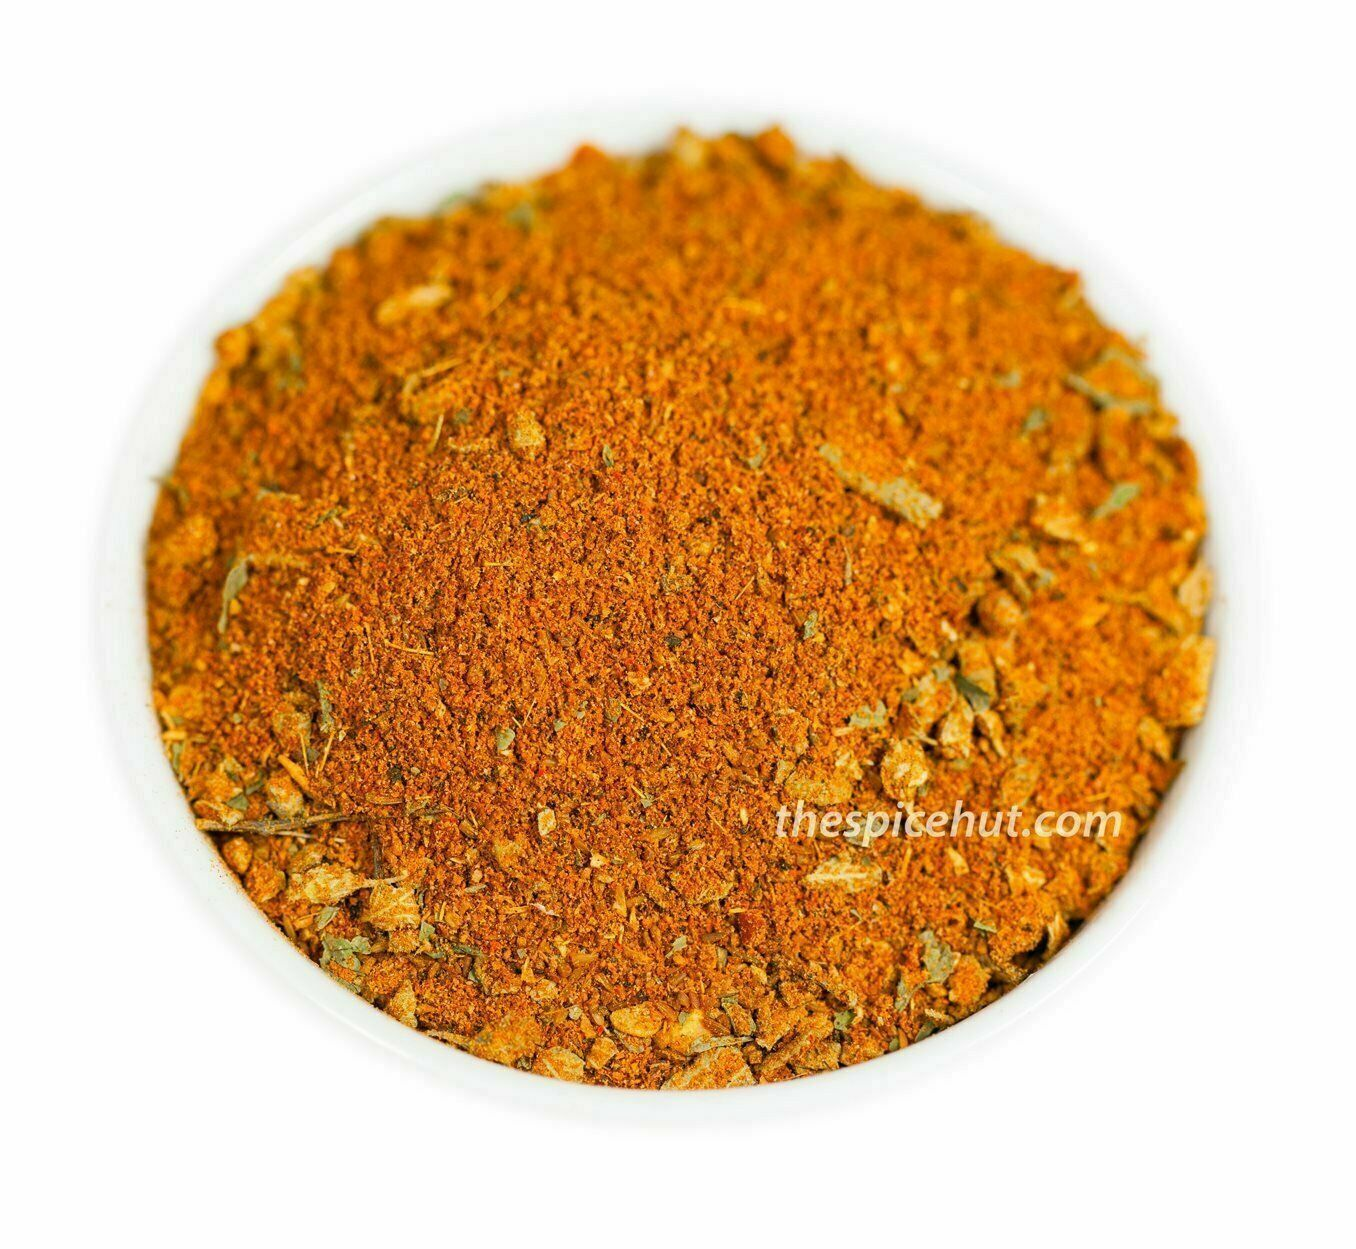 Primary image for Taco Seasoning (Organic) Jar Mexican cooking rich authentic flavor The spice hut